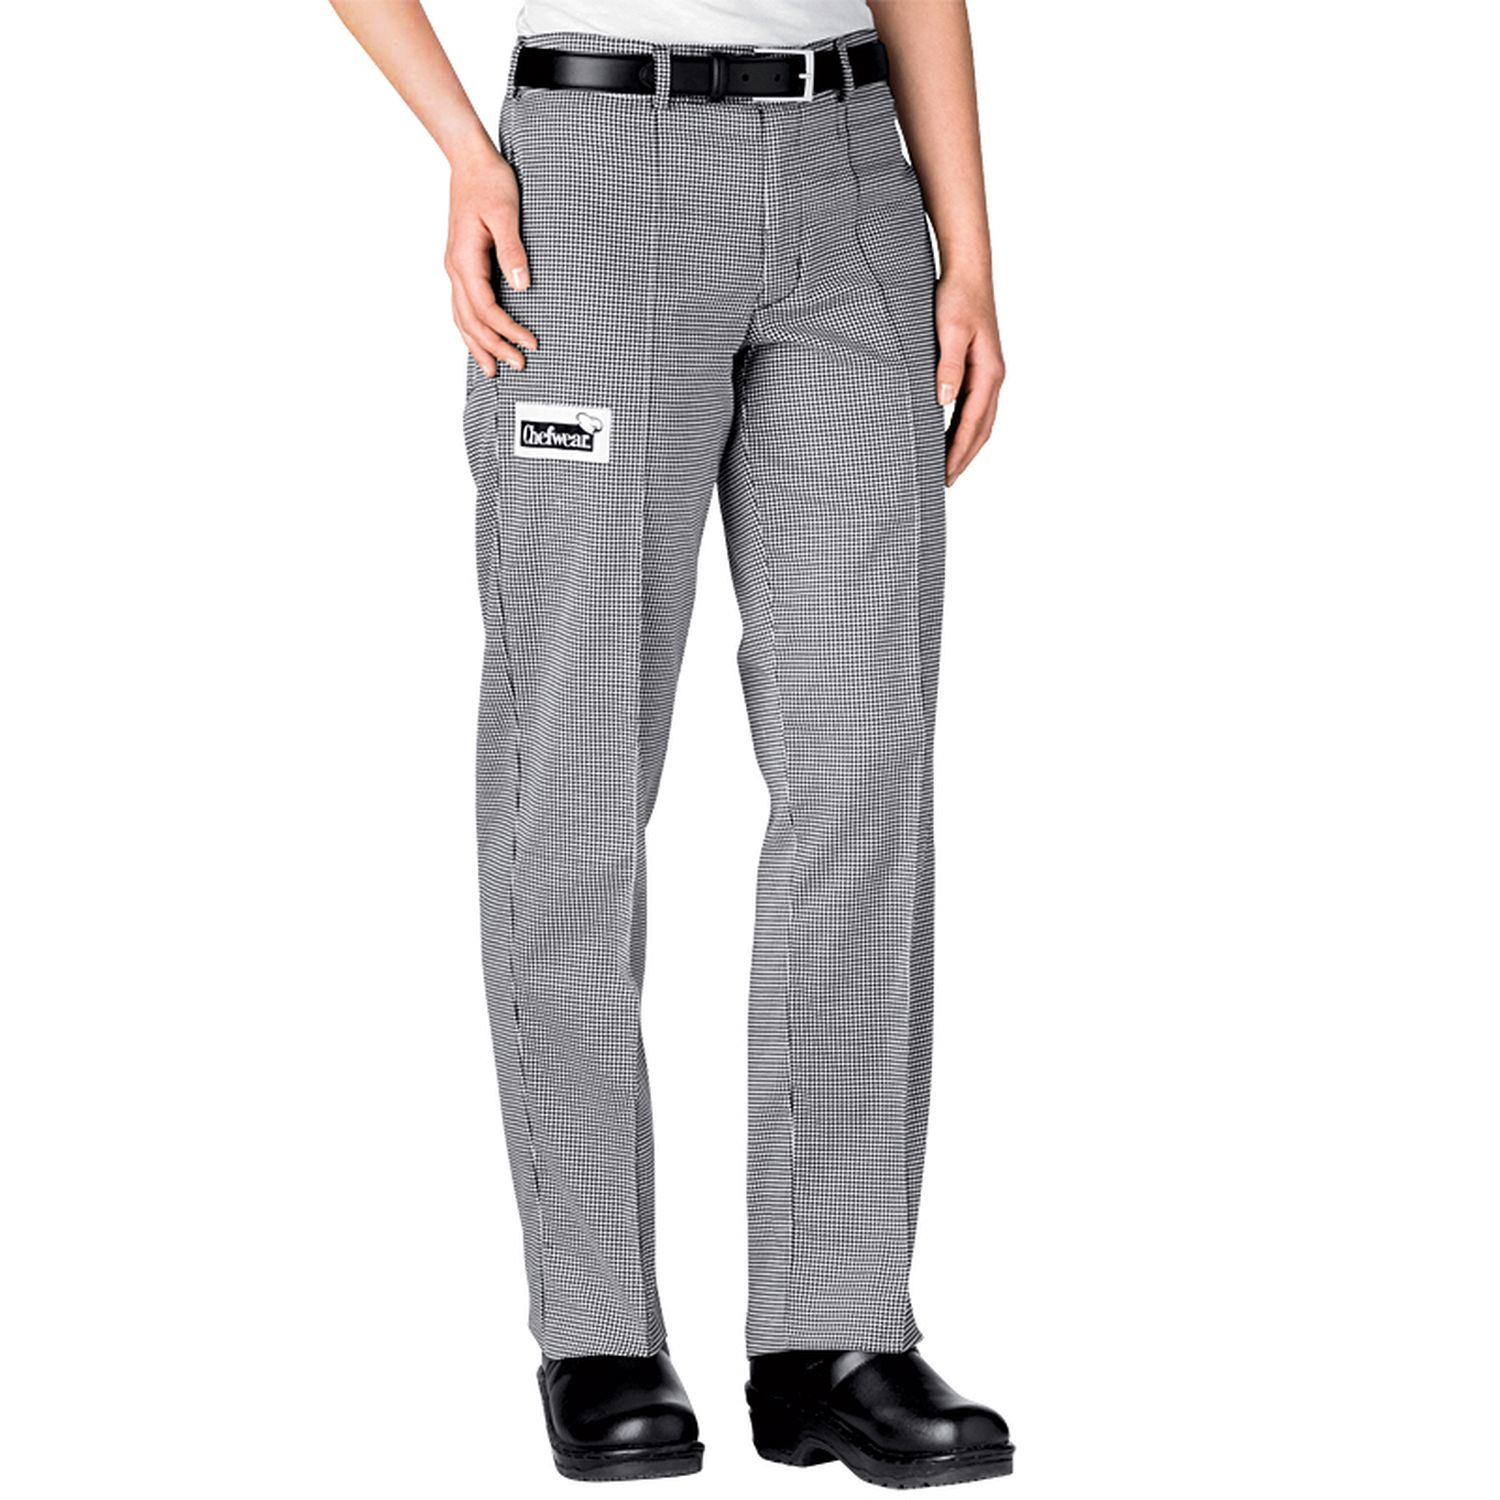 Perfect Women S Pants Tailored Front Easywear Our Women S Tailored Front Pants